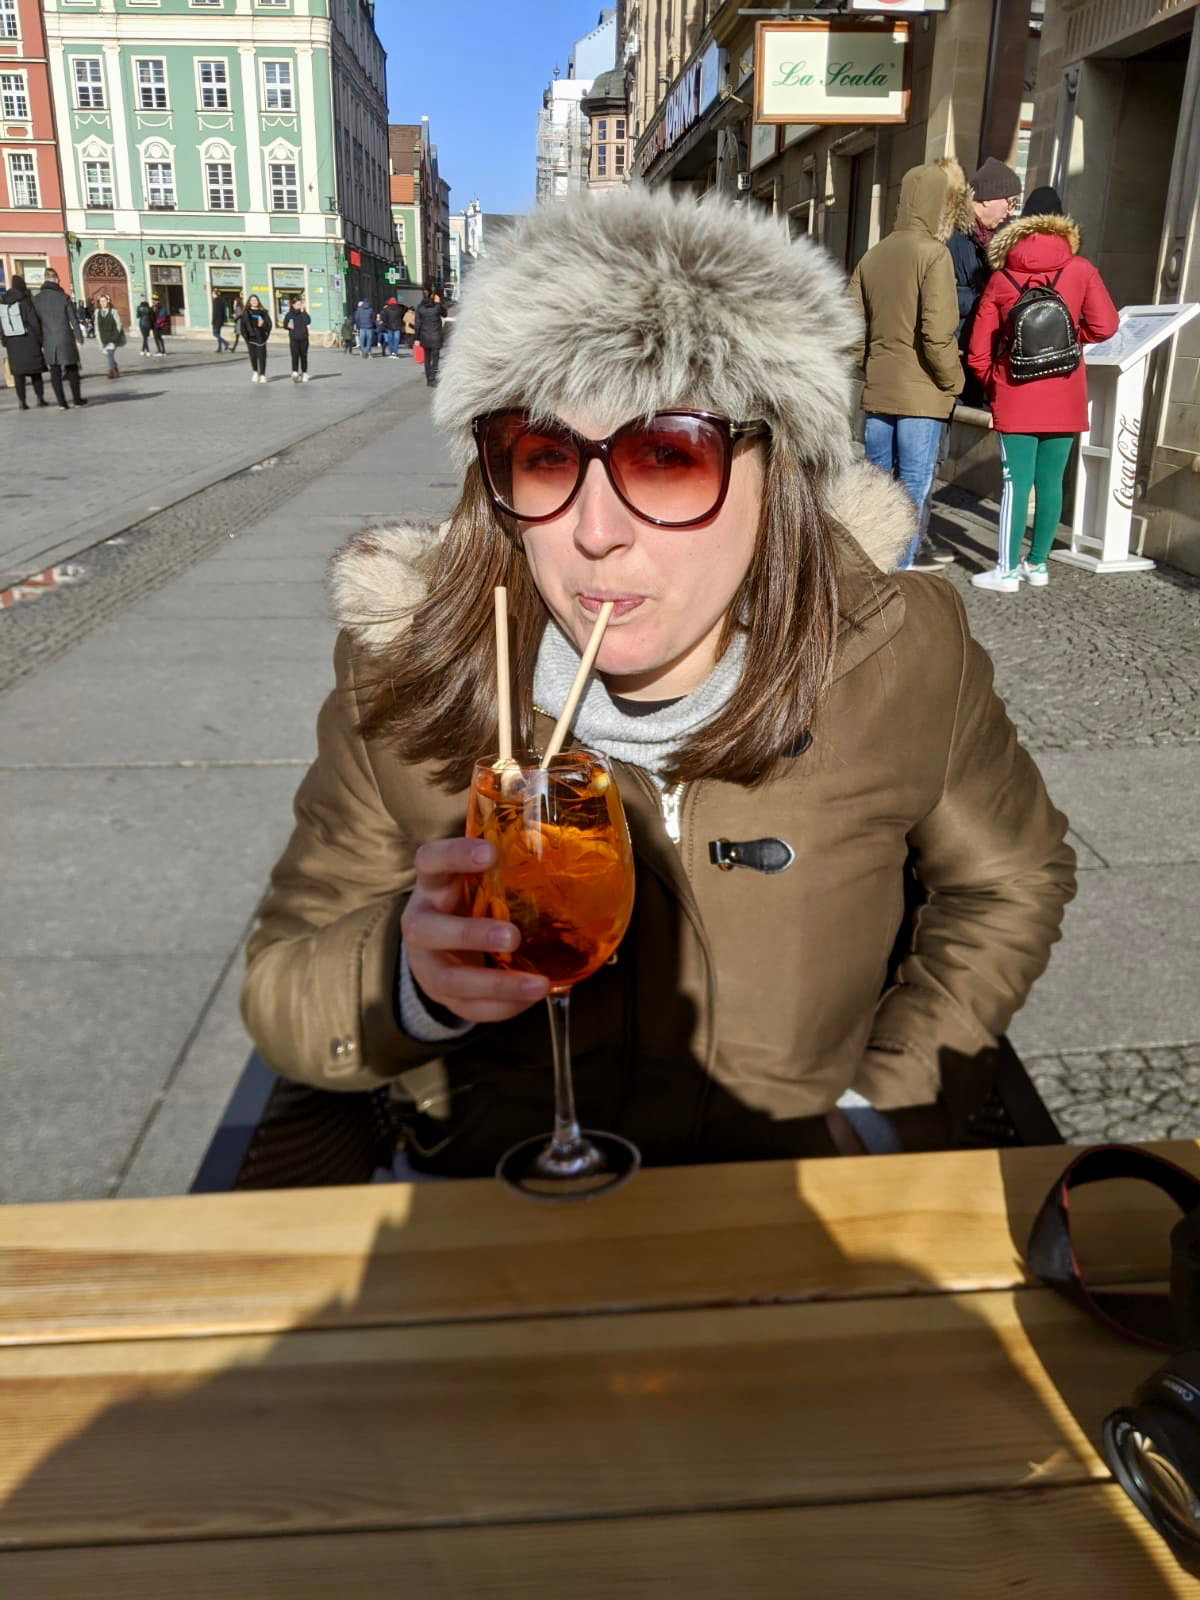 cheap european city break - Nell drinking an Aperol Spritz in the market square in Wroclaw, Poland, whilst wrapped up in a coat and a fluffy hat trying to stay warm.